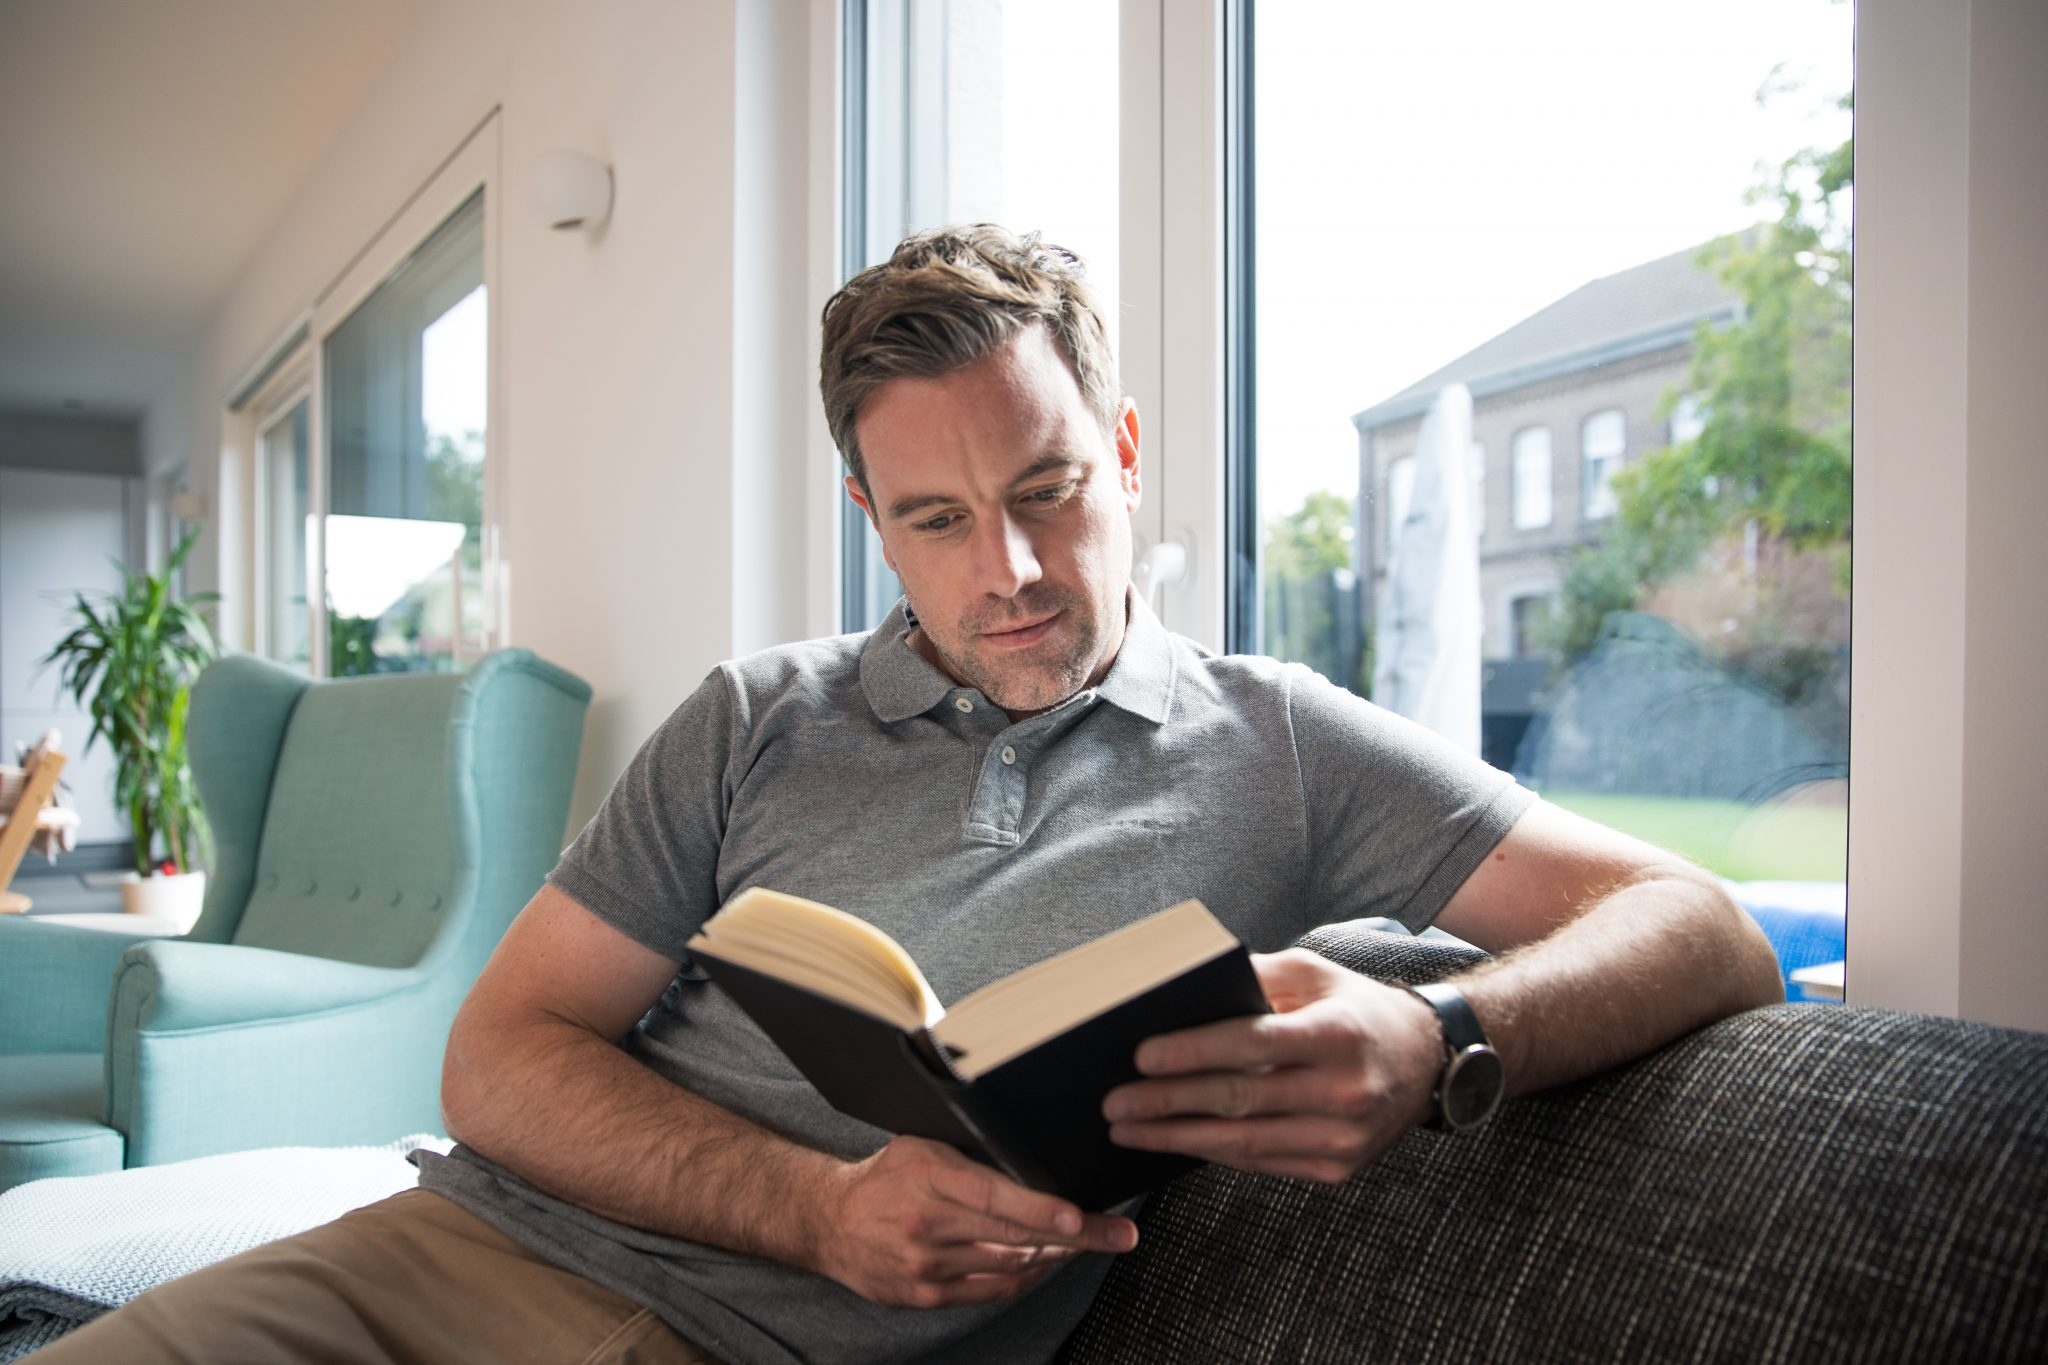 Man reading book on sofa at home